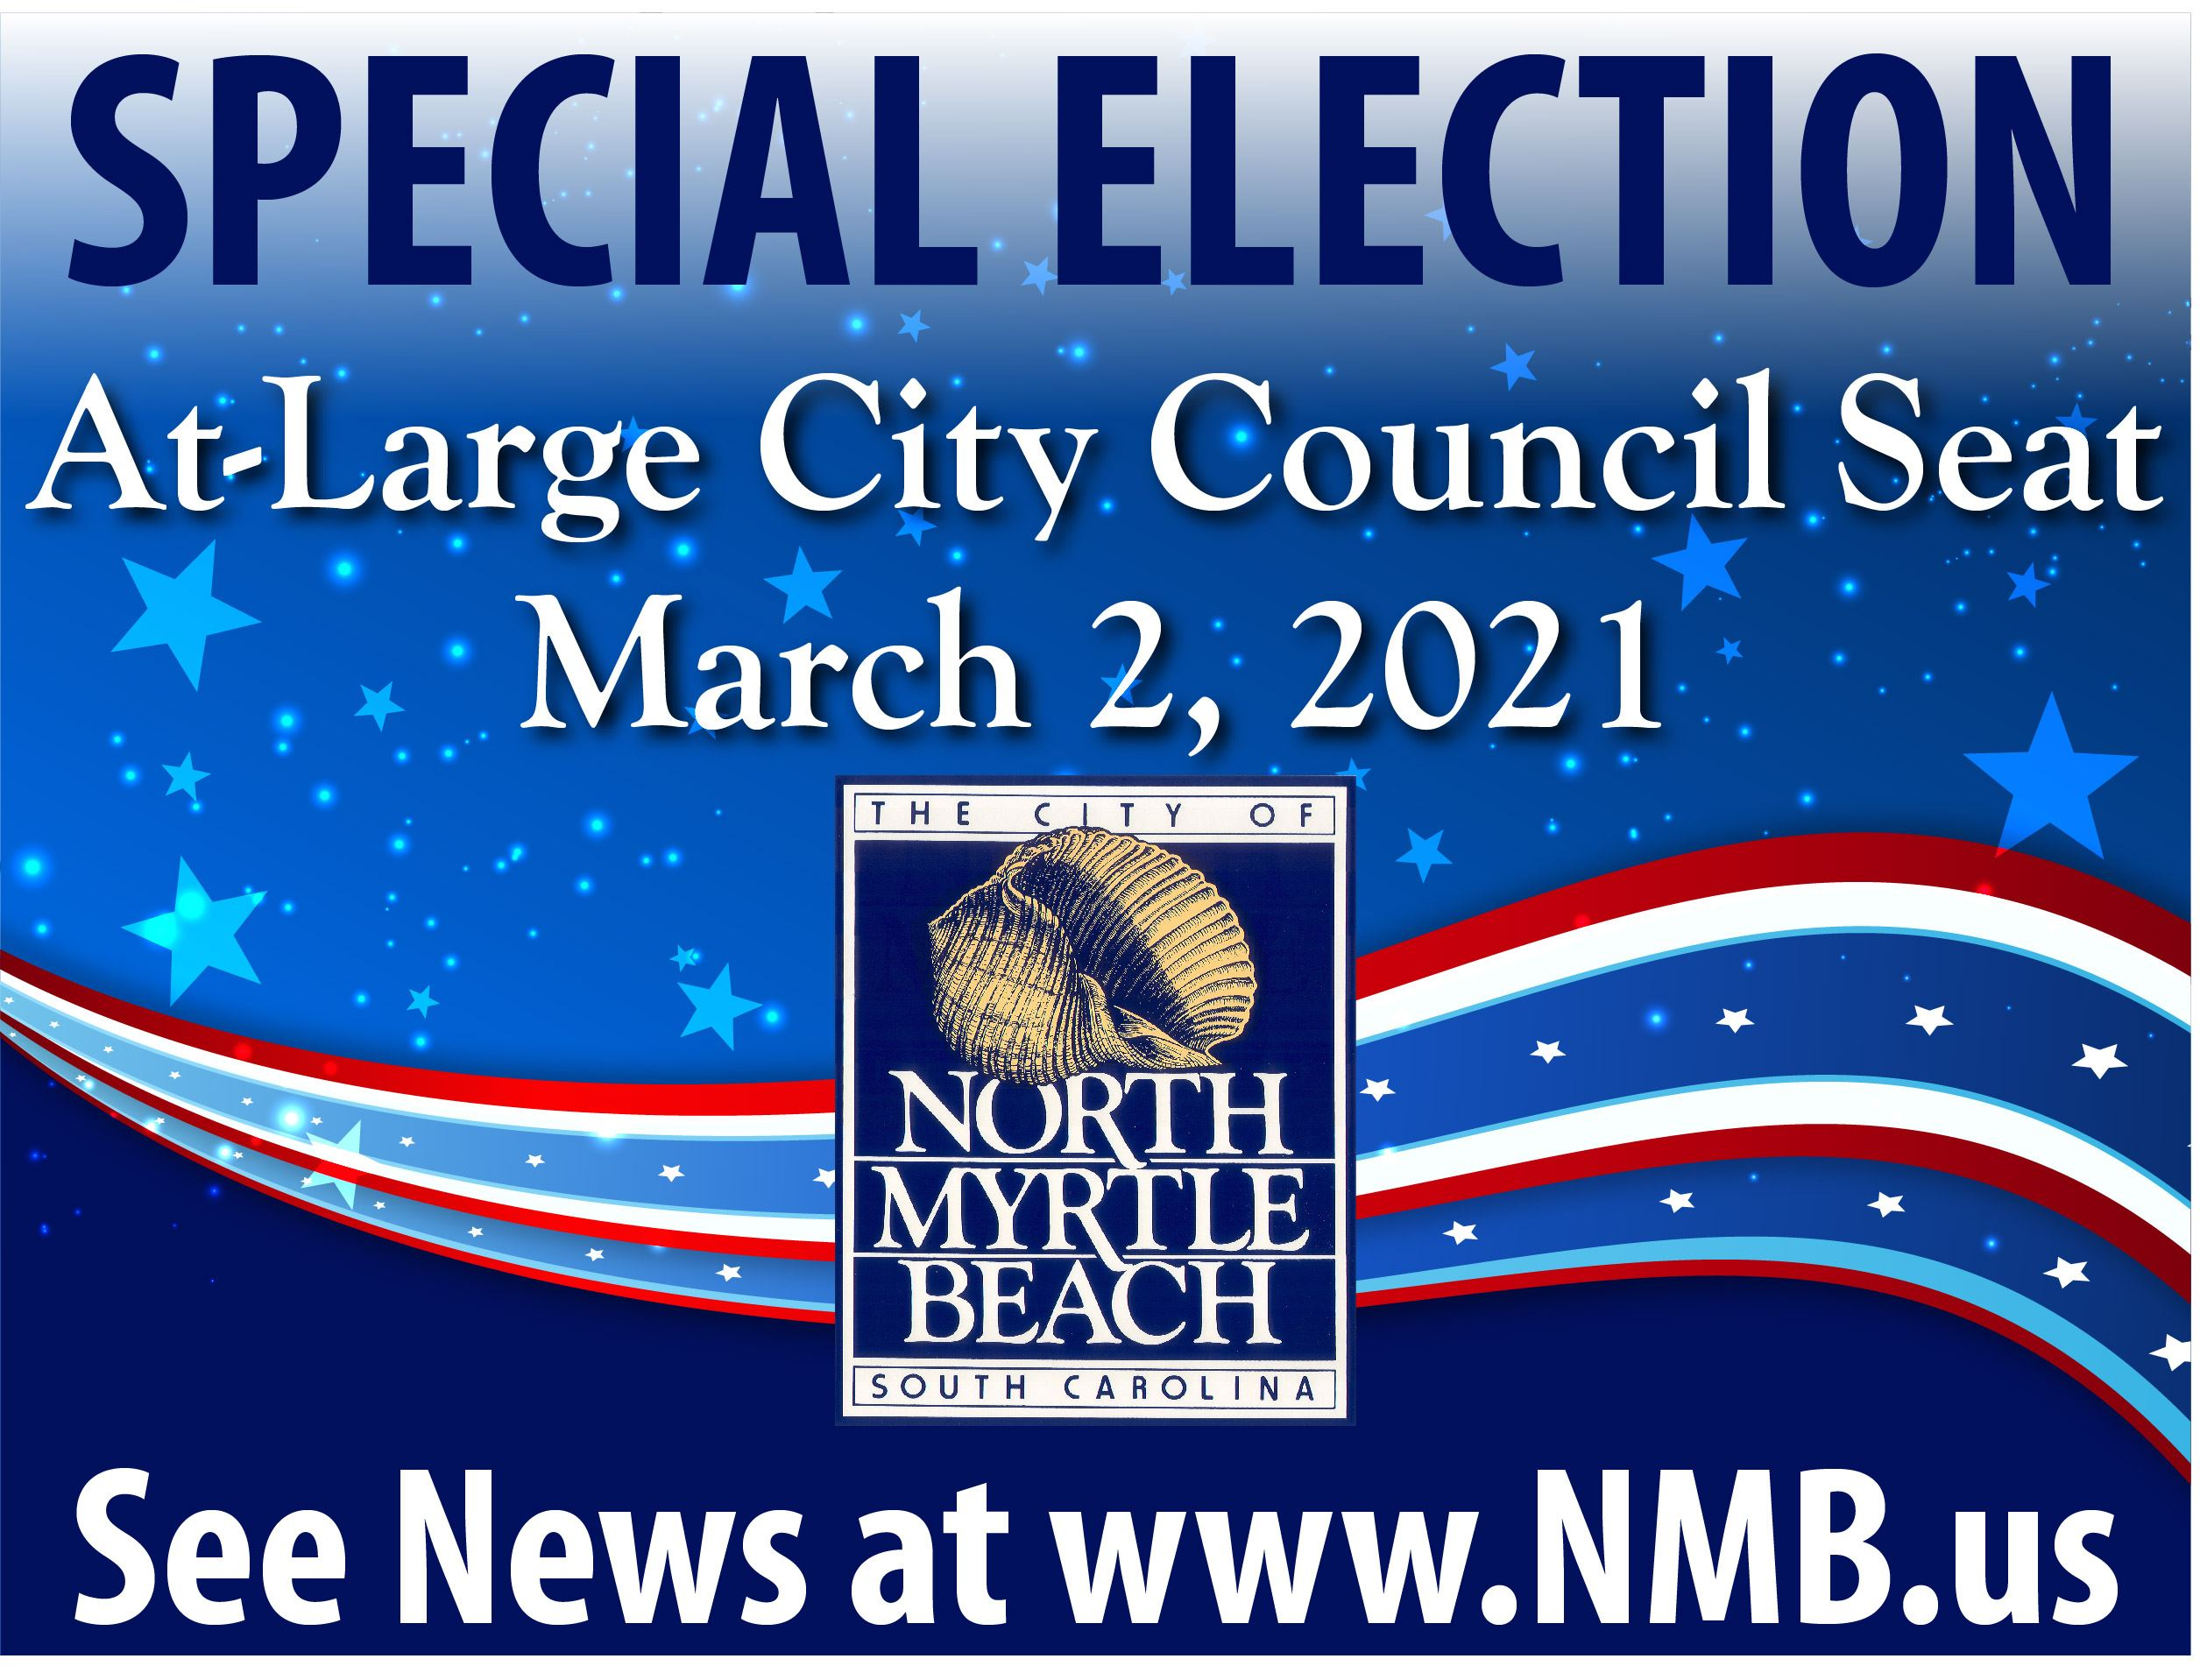 Special Election